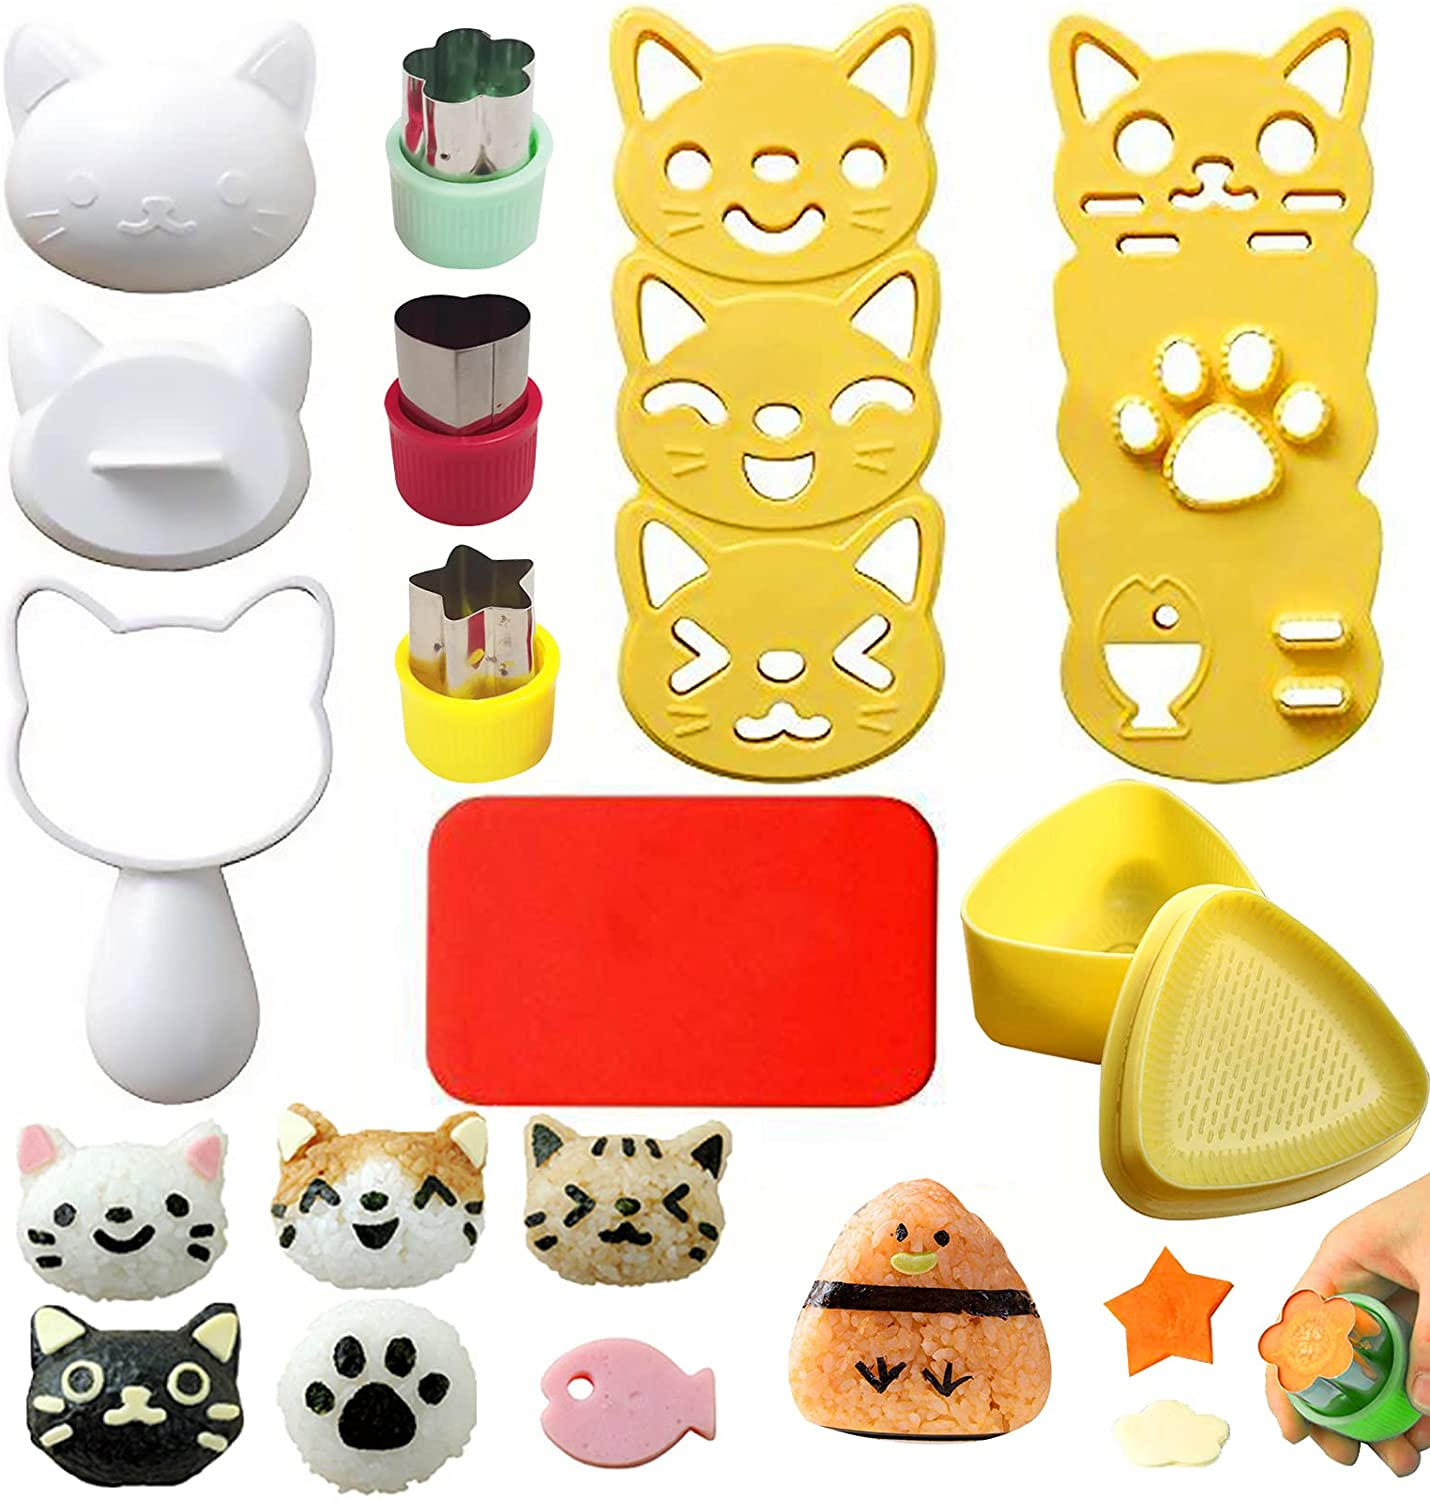 Cute Cat Rice Ball Molds 6 Sets Sushi Molds Bento Accessories Kits with 3PCS Vegetable Fruit Cutter Shapes and 1PC Gimbap Mold Triangle for Nori Rice Making DIY Bento Box Picnic Tools